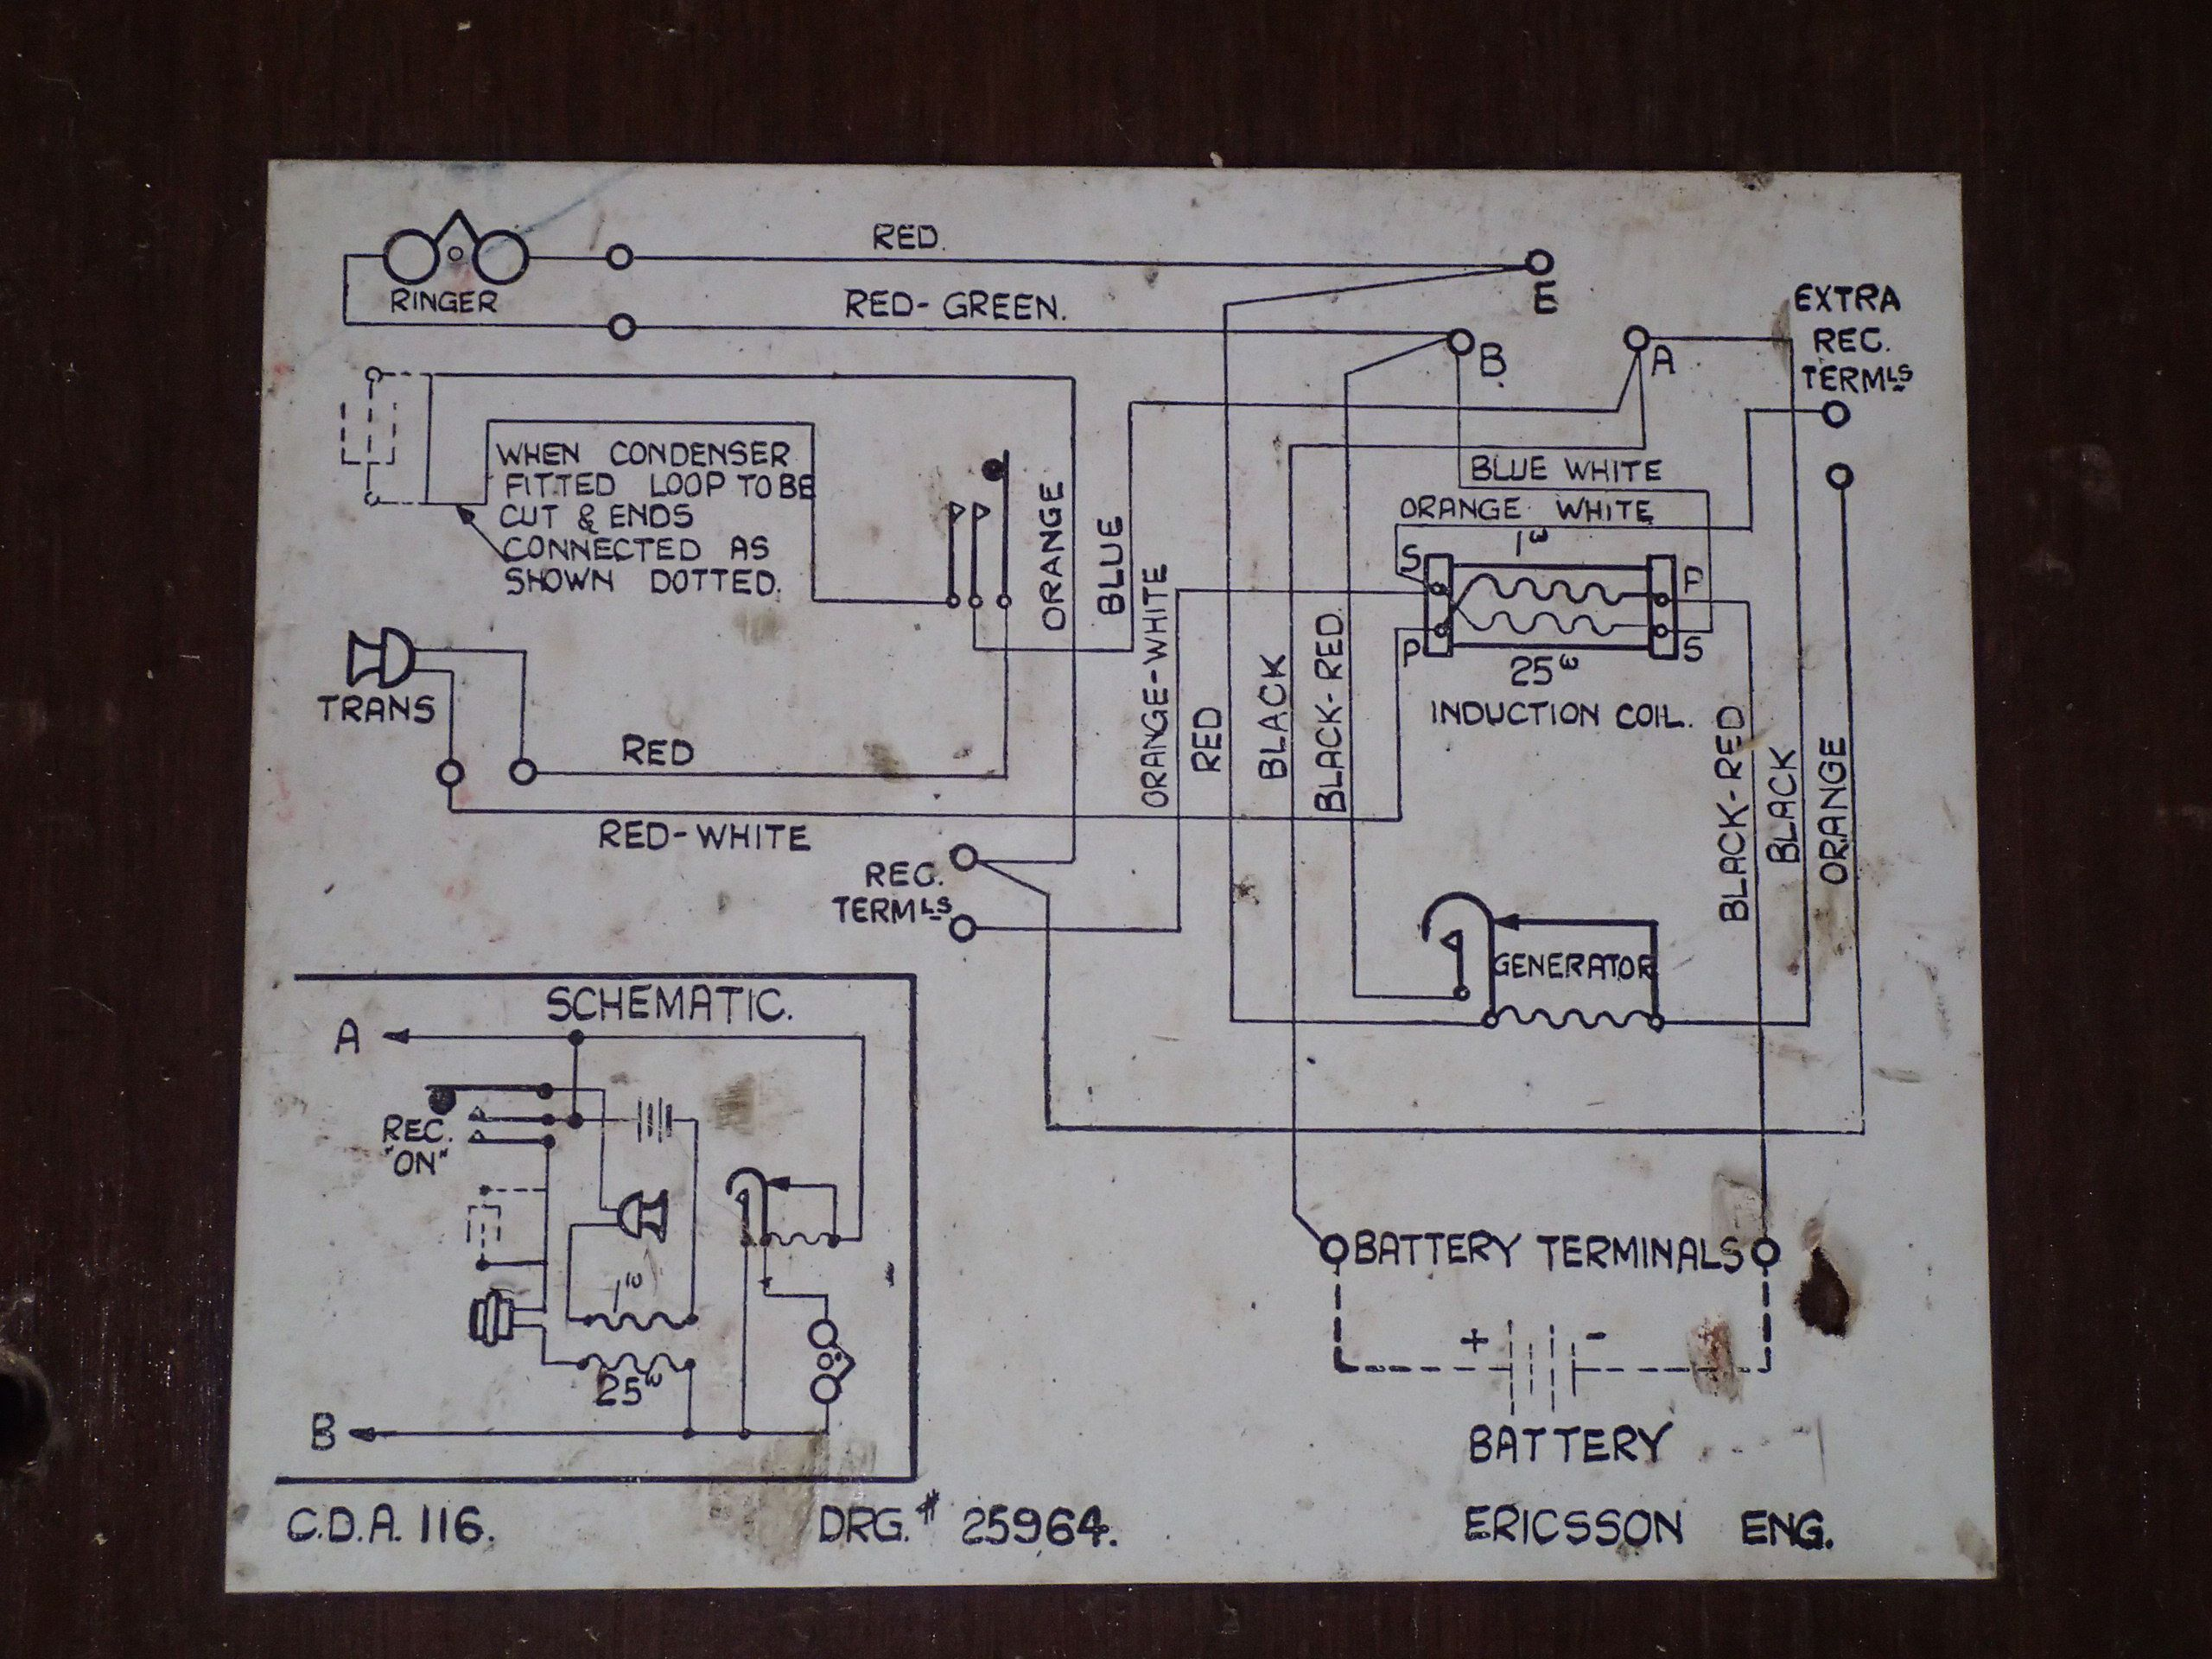 6f95880f4fd59b54fce2a8ee616cb286 phone number 2 wiring diagram magneto wall telephones pinterest Stromberg Carlson Telephone at soozxer.org